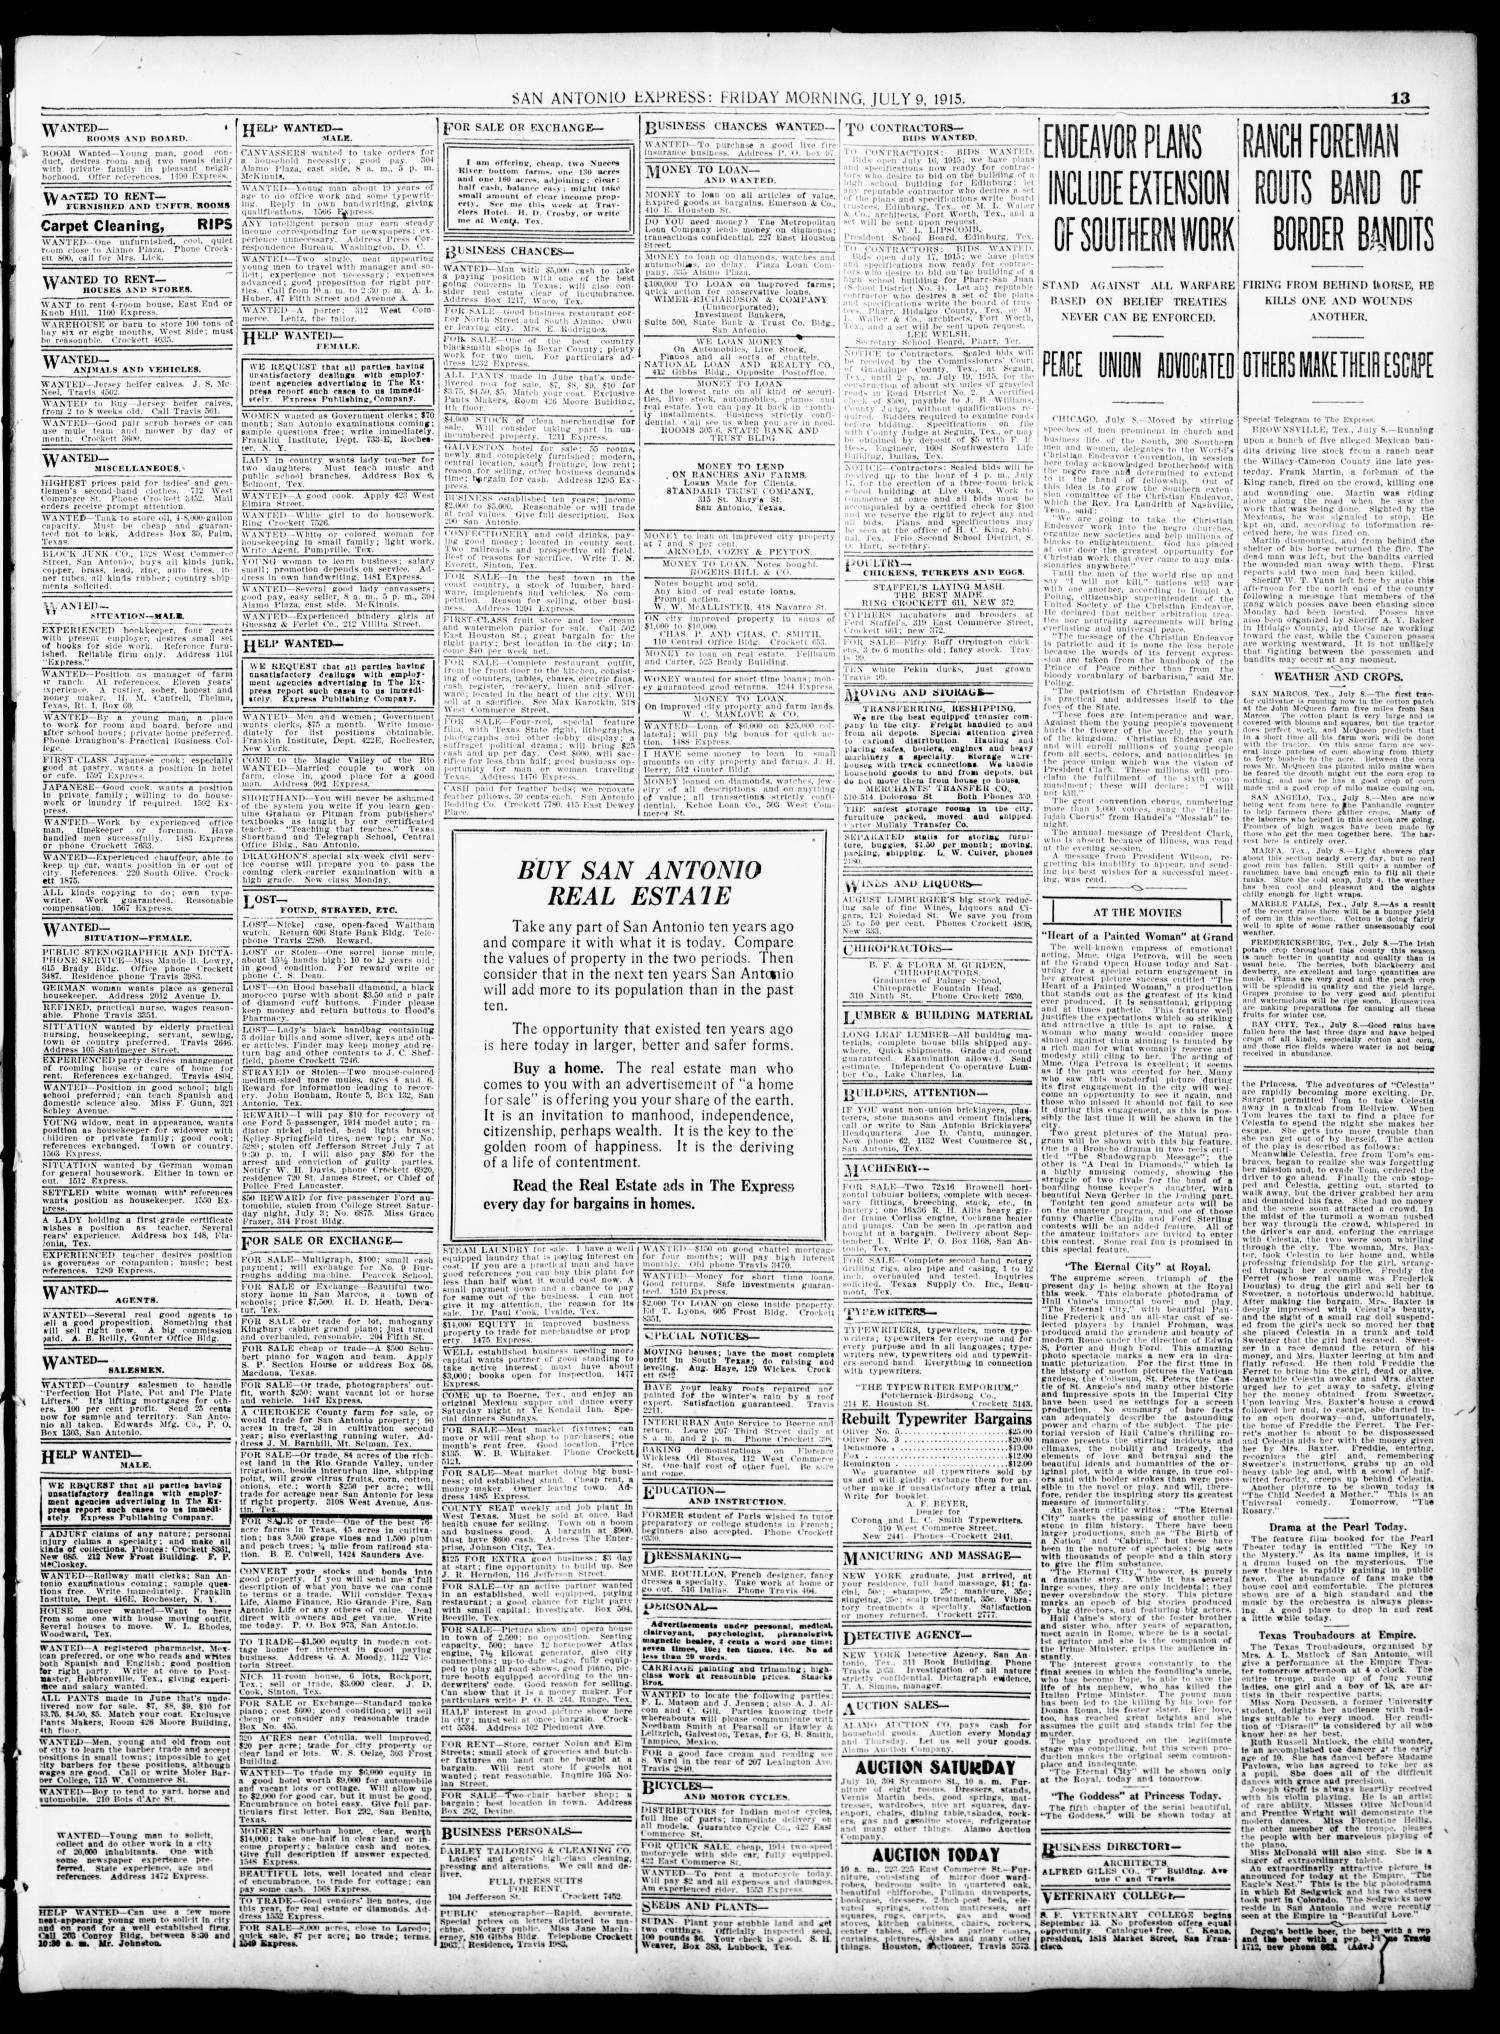 San Antonio Express Tex Vol 50 No 190 Ed 1 Wickes Pir Wiring Instructions Friday July 9 1915 Page 13 Of 14 The Portal To Texas History